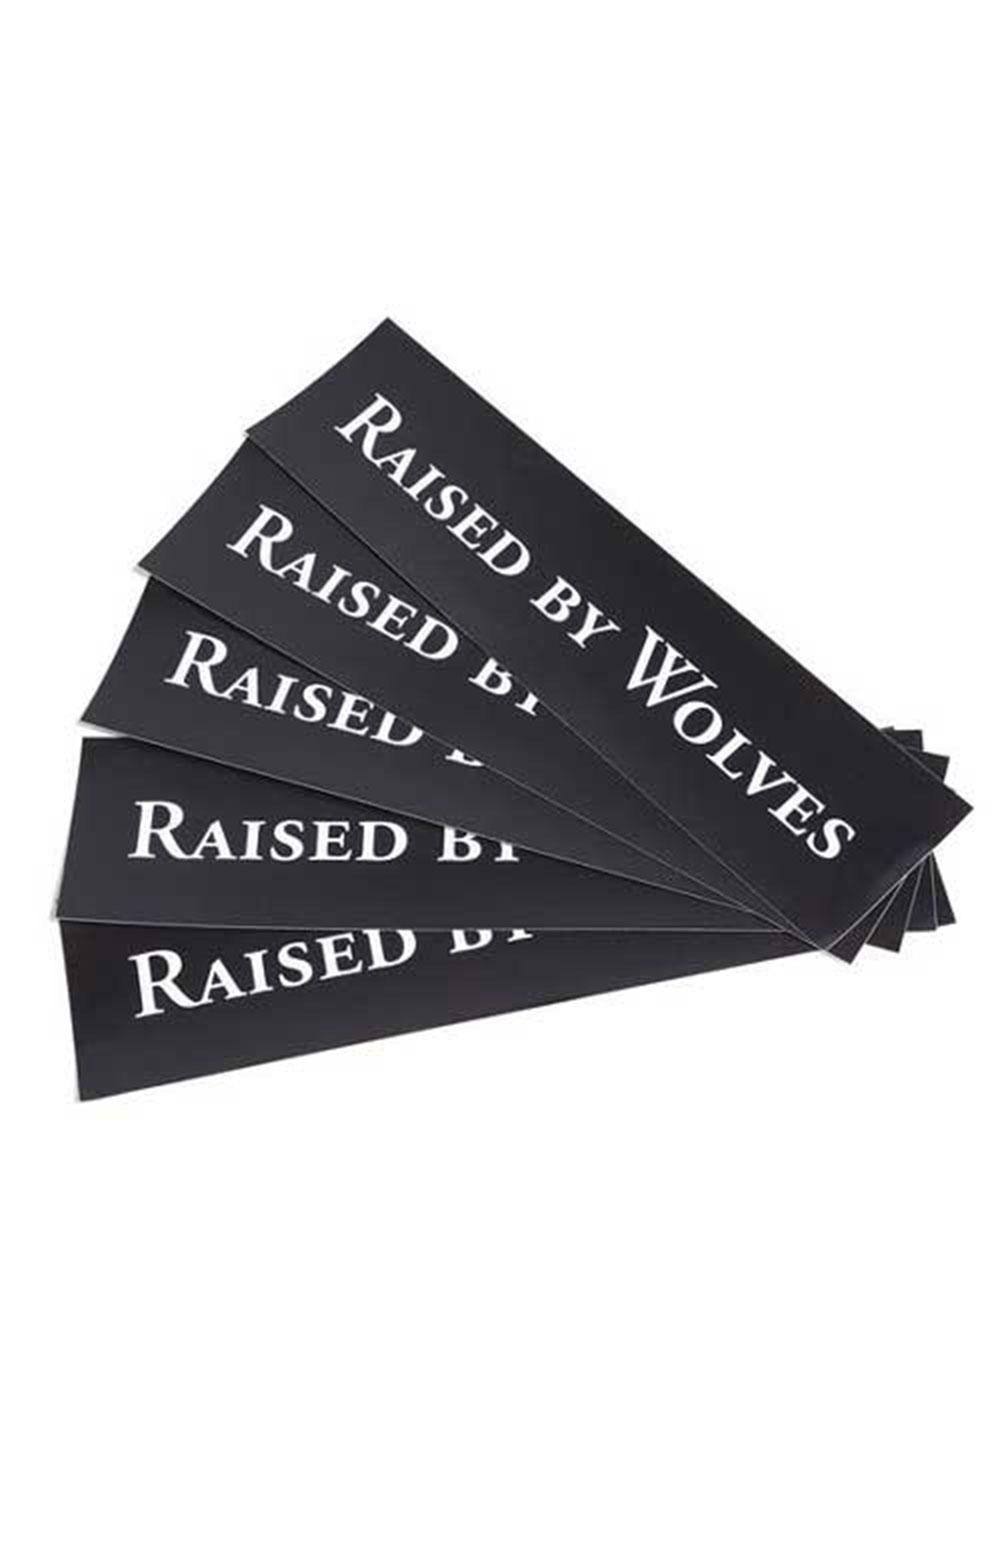 RBW Logotype Pack Of 5 Stickers - Black